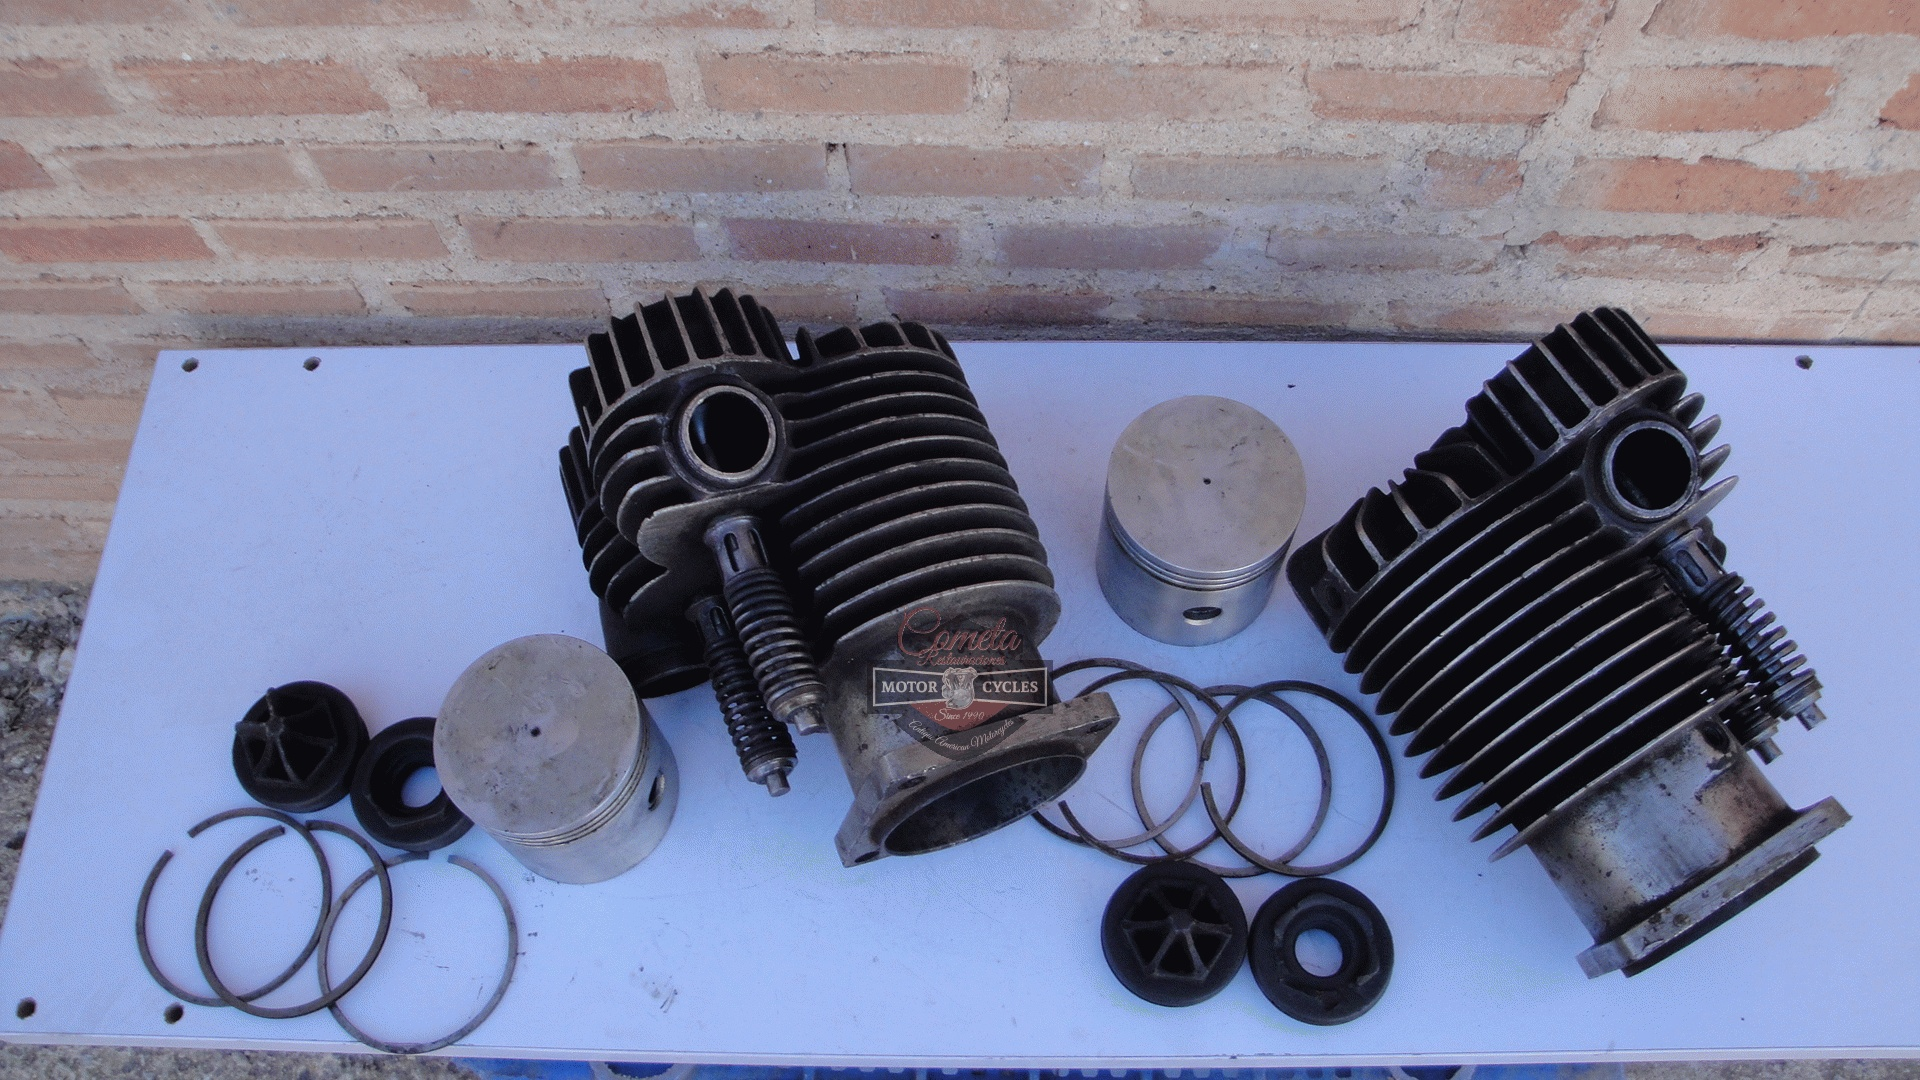 INDIAN POWERPLUS /  INDIAN DAYTONA RACER / BOARD TRACK RACER  CYLINDERS  BIG VALVE 1200cc 1919 a 1922